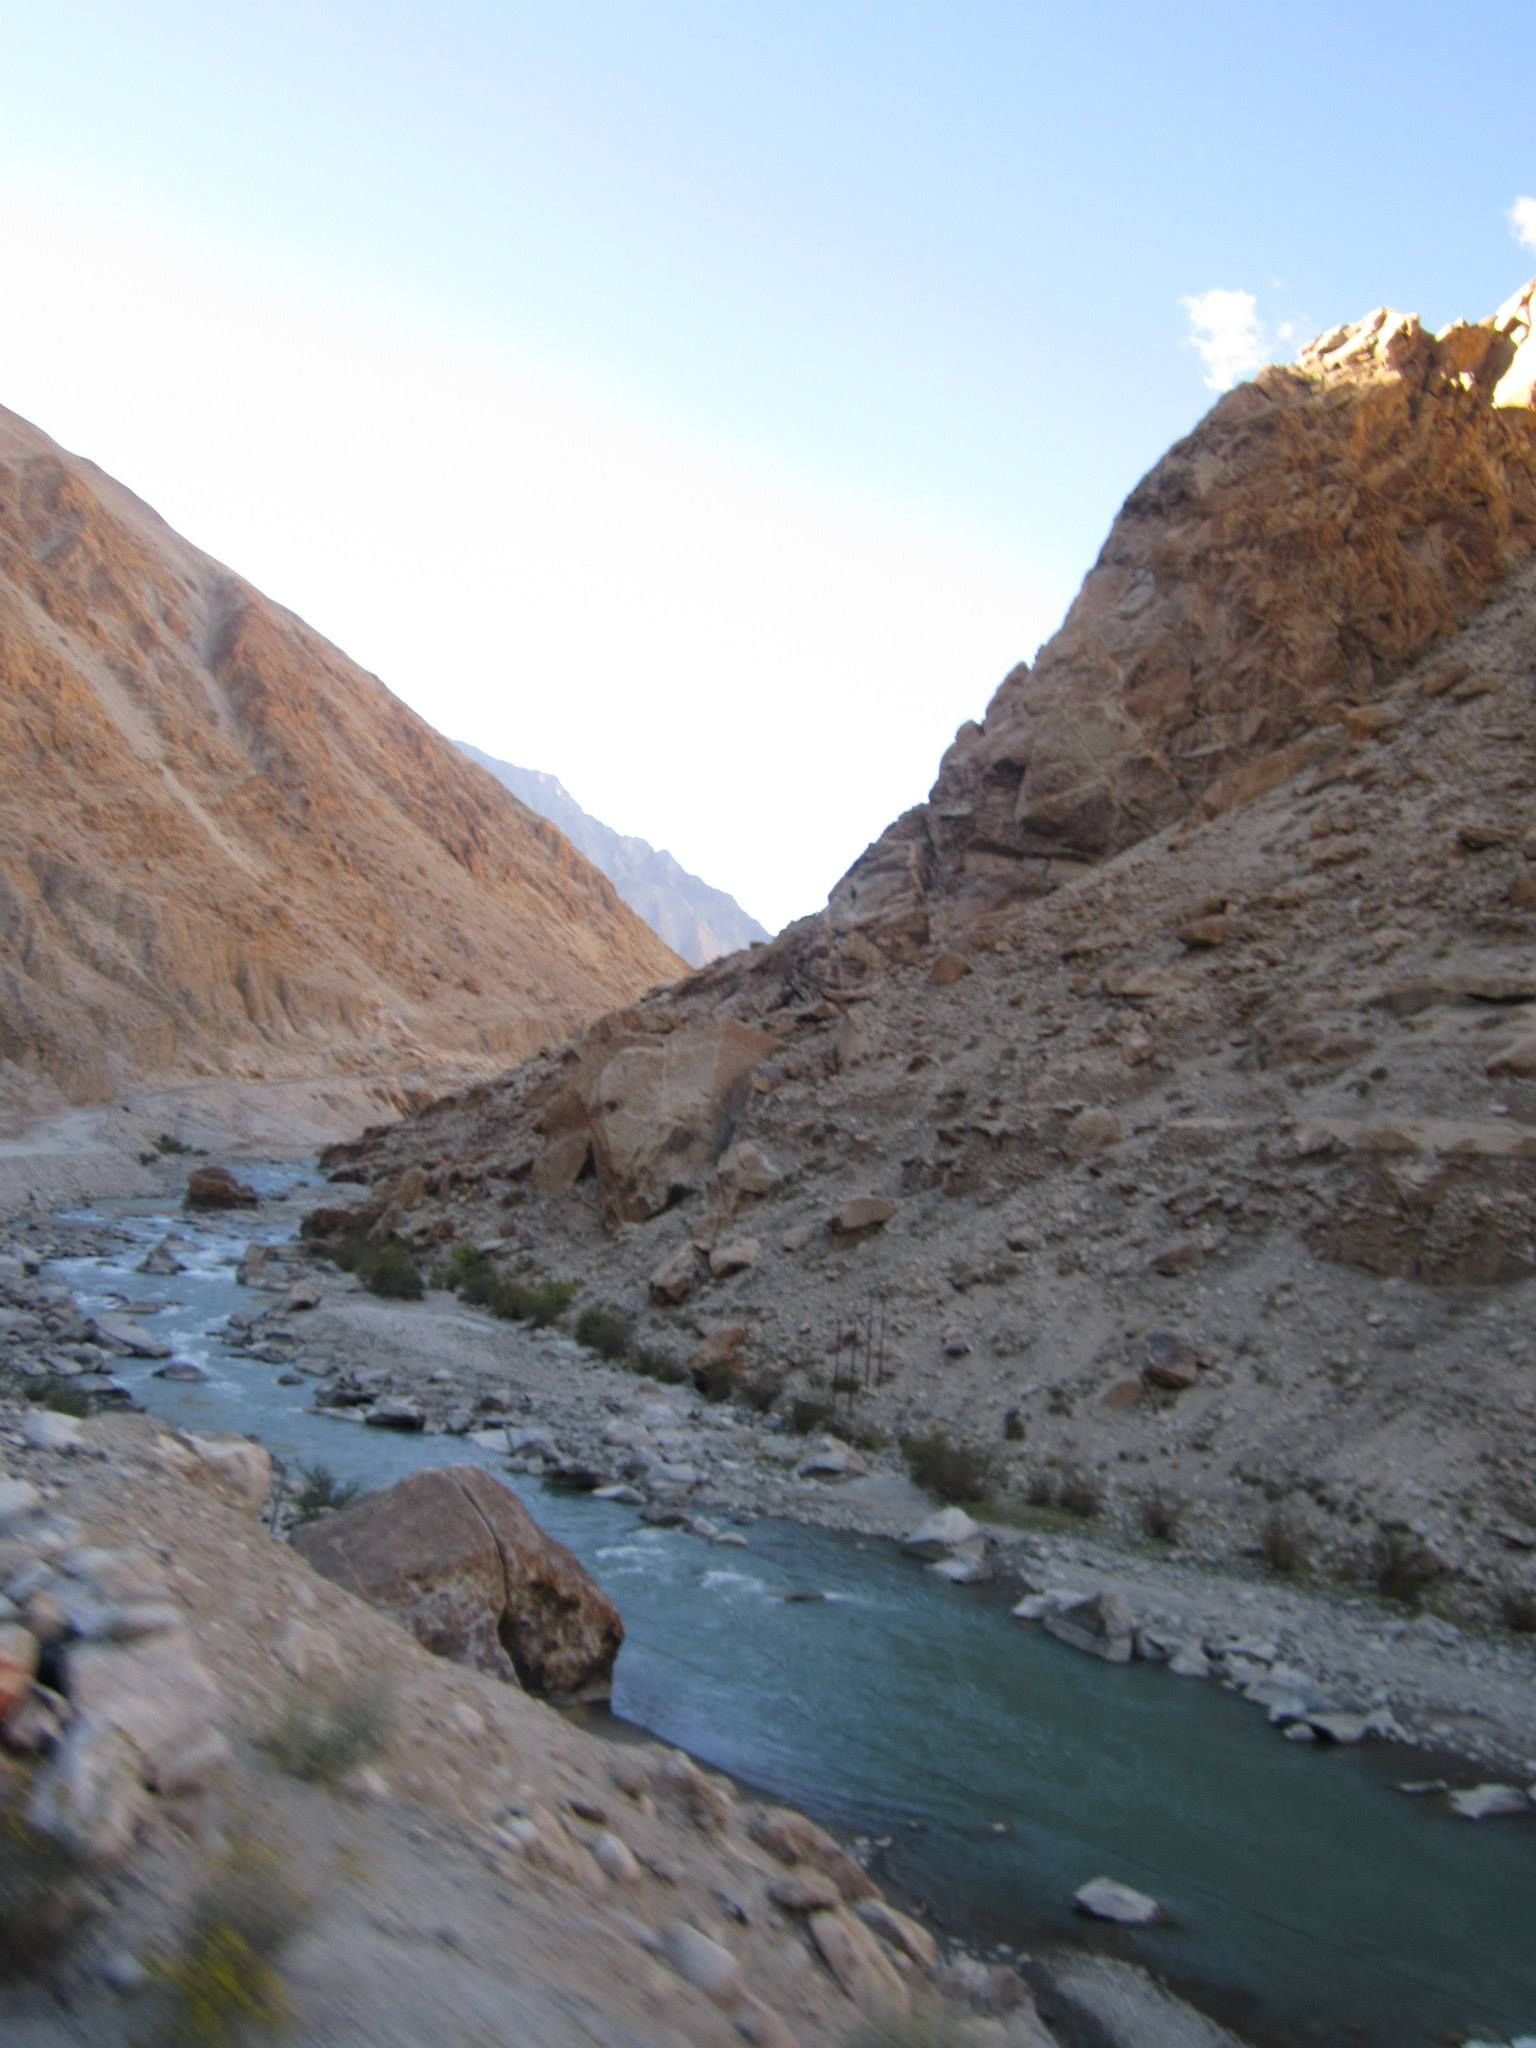 photo essay meet ladakh traveldonuts indus valley the indus river snaking by the sides tapped my memories when we